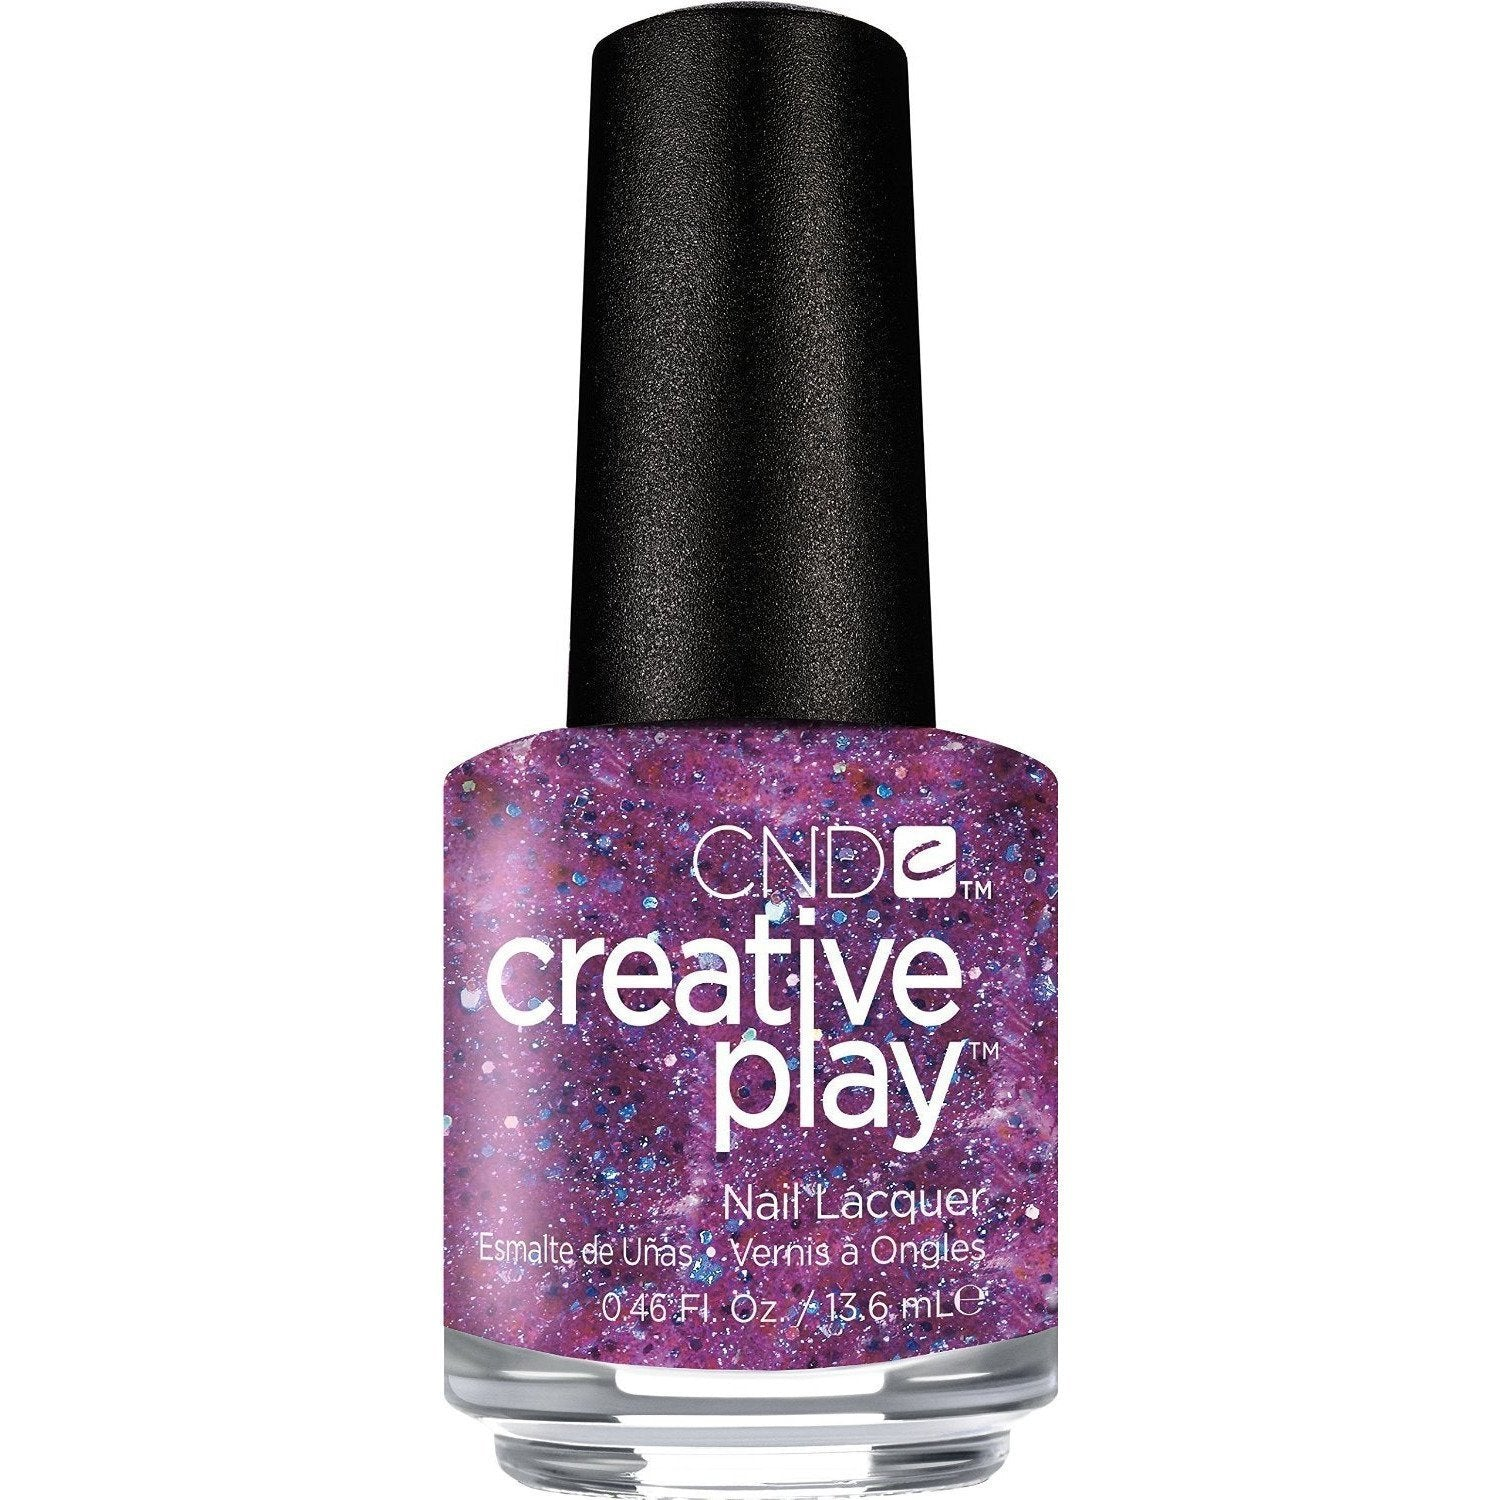 CND Creative Play Nail Polish - Positively Plumsy | CND - CM Nails & Beauty Supply